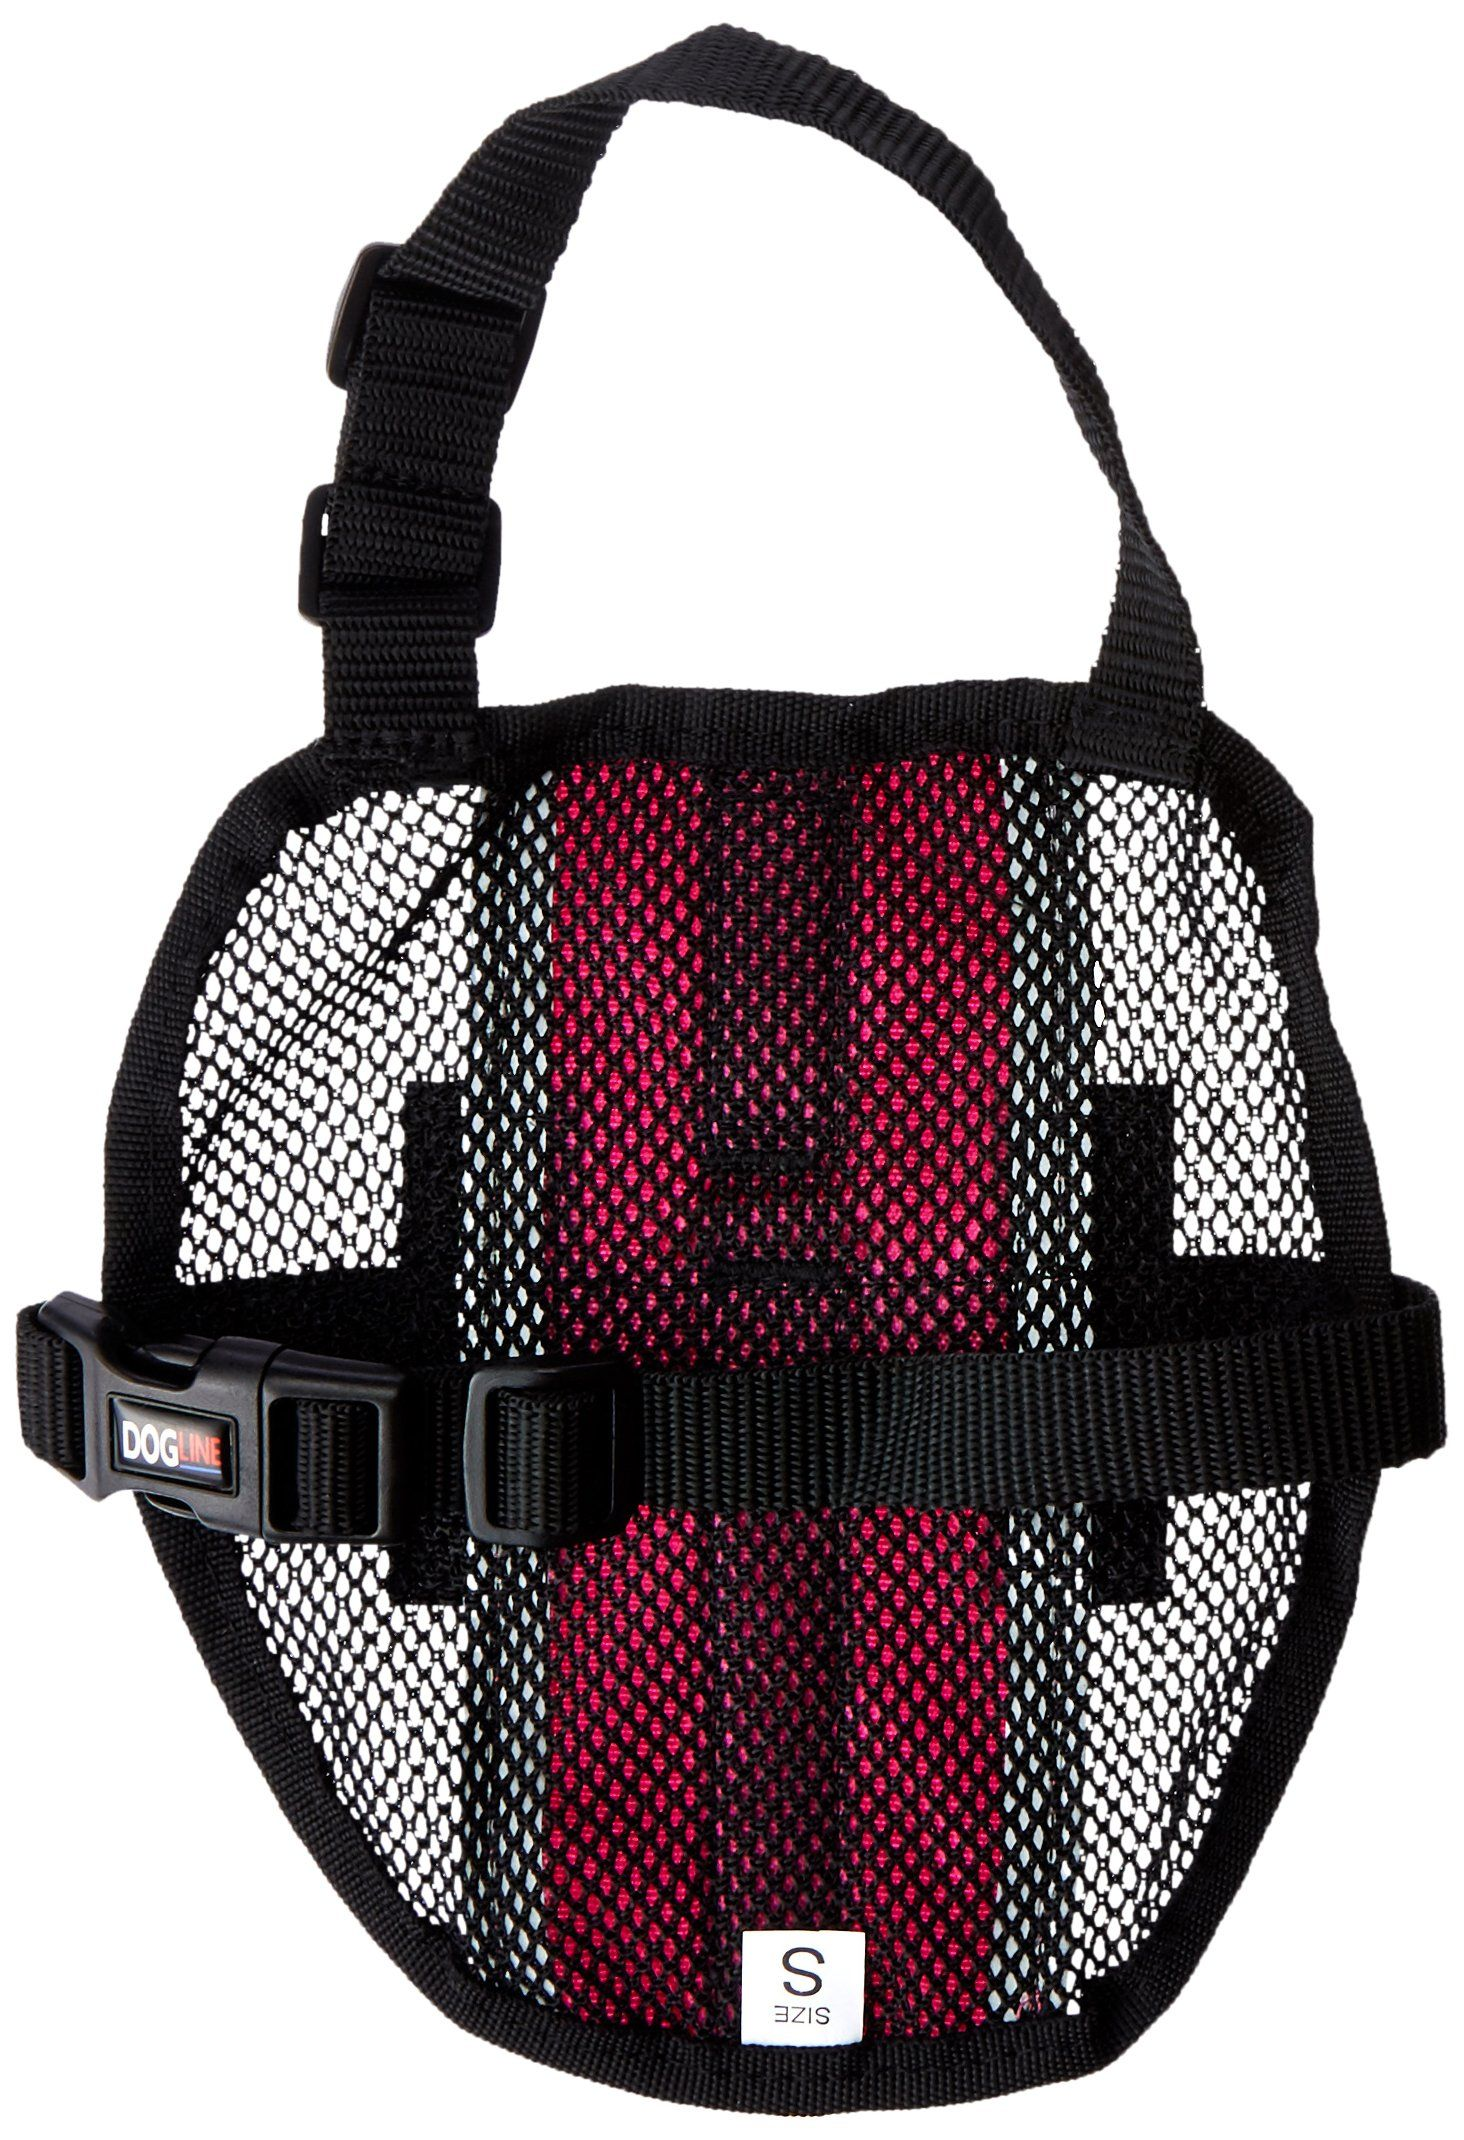 Dogline Maxaire Multipurpose Mesh Vest For Dogs And 2 Removable